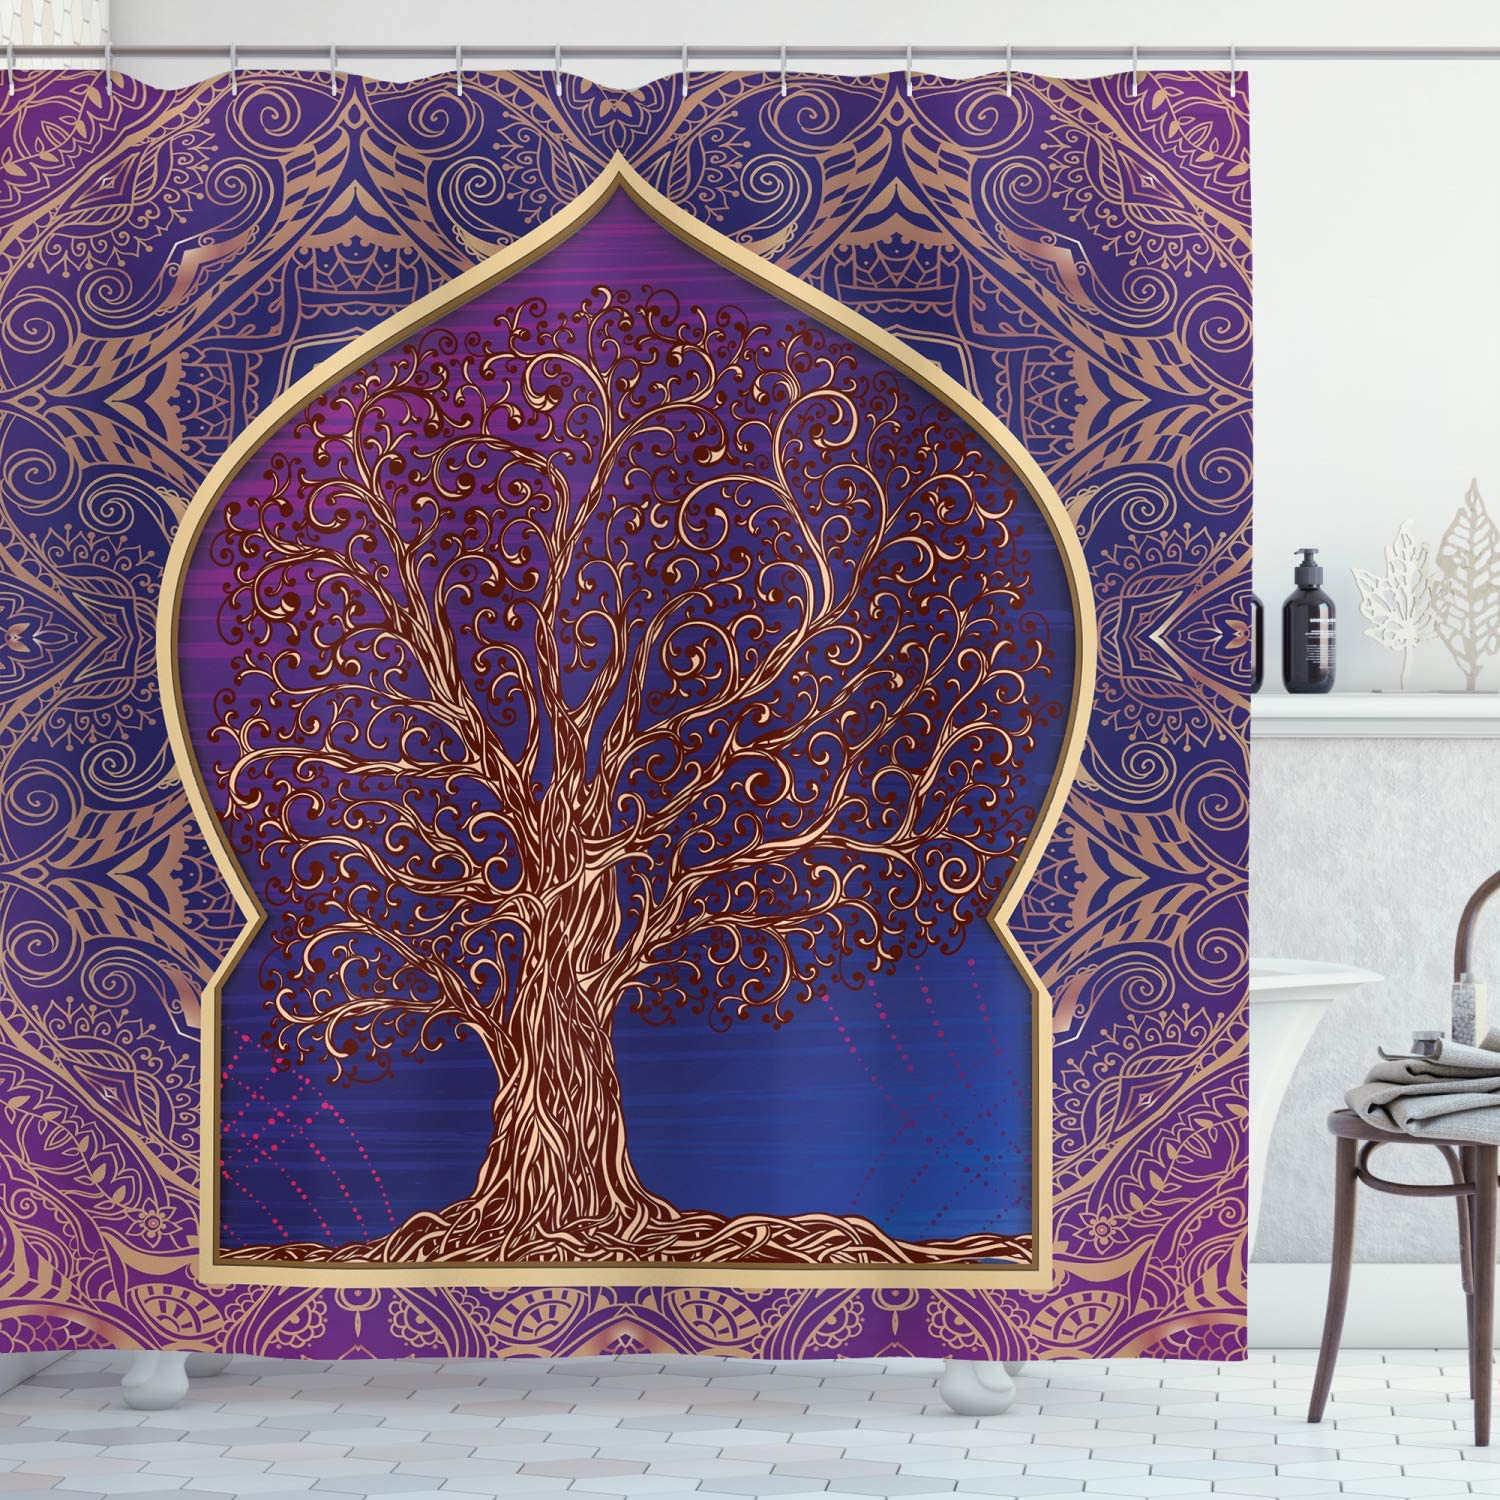 Ambesonne Ethnic Shower Curtain, Tree with Curved Leafless Branches Middle Eastern Moroccan Arch Retro Art Design, Fabric Bathroom Decor Set with Hooks, 70 Inches, Purple Blue